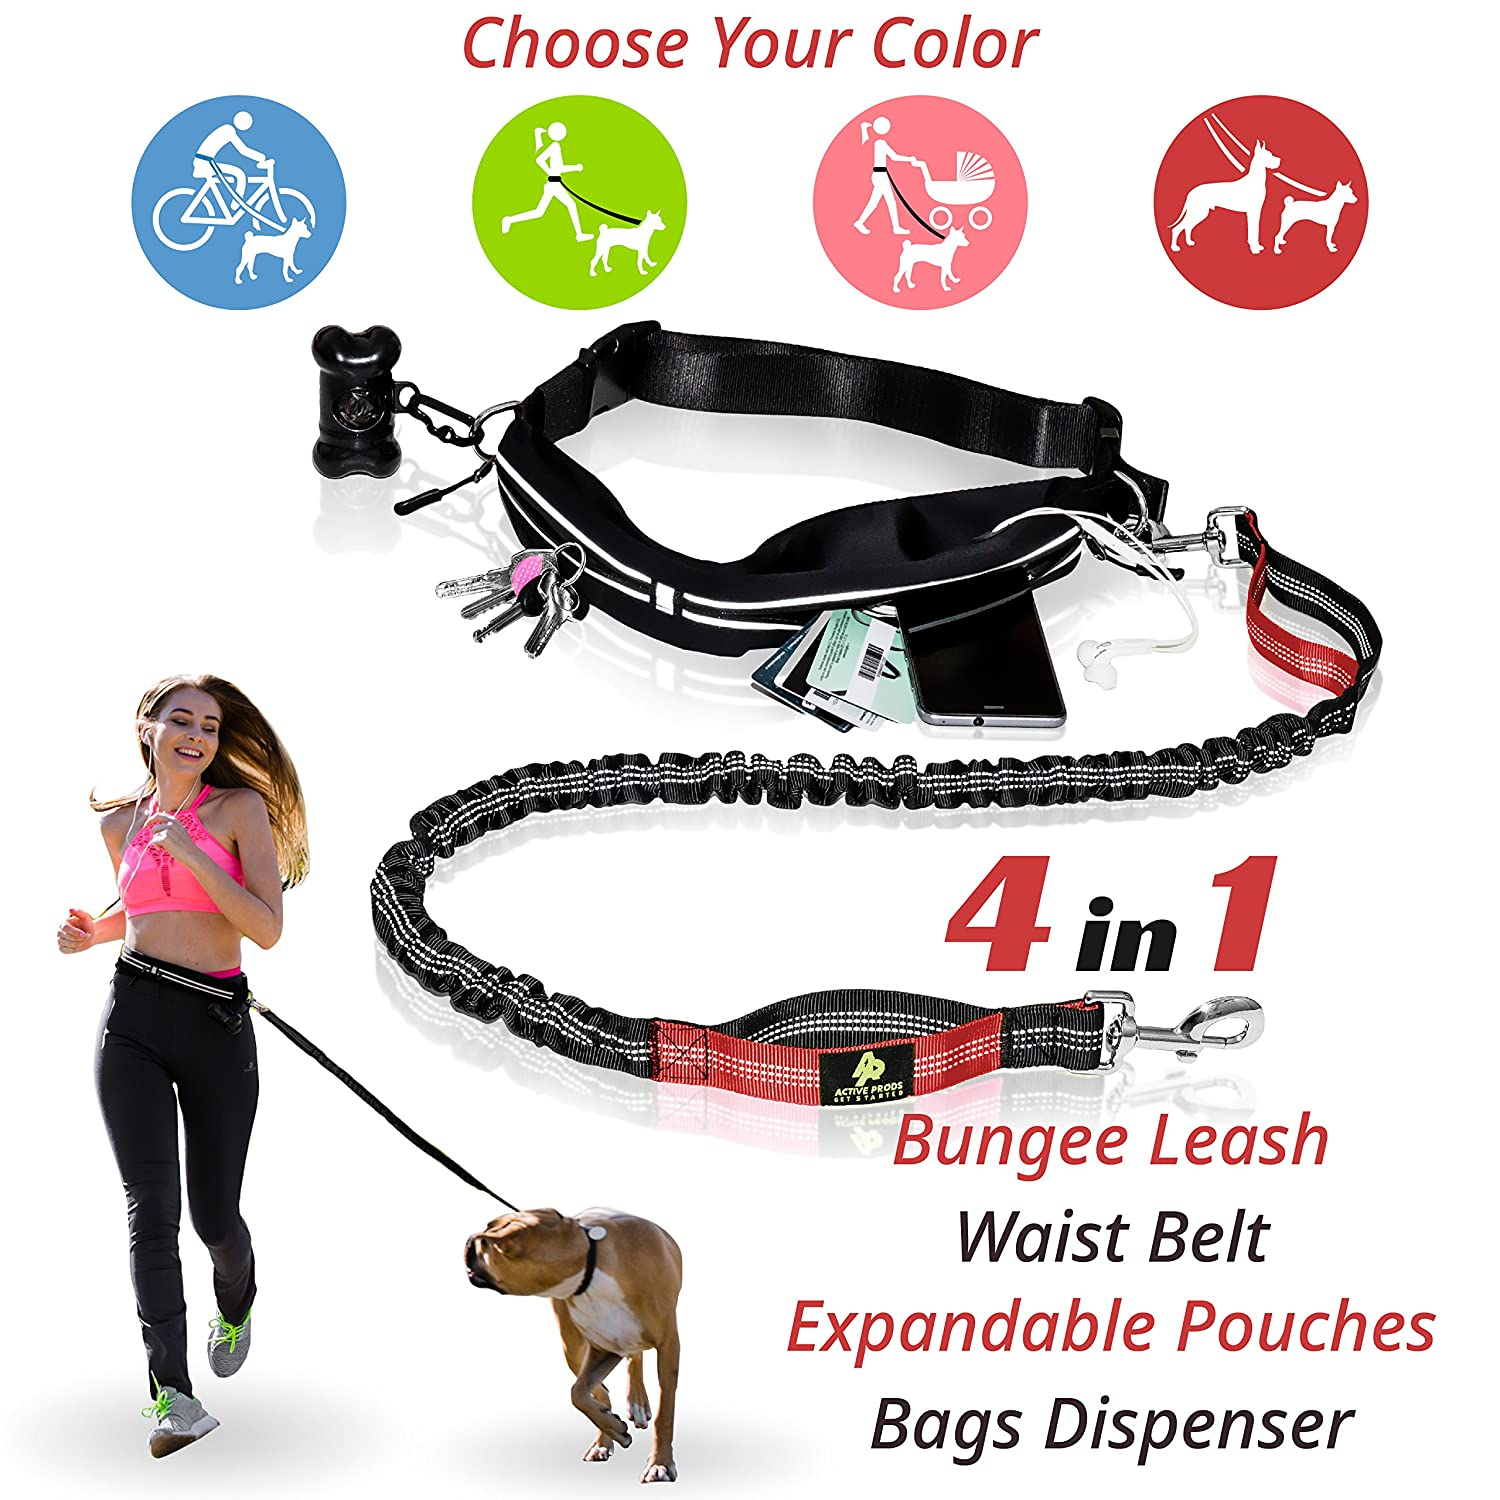 PREMIUM Hands Free Dog Leash | Bungee Dog Leash for Walking & Running with Small, Medium or Large Dogs | Reflective Waist Belt for Phone, Keys and Cards |BONUS Collar Bag Dispenser |Great GIFT Active Prods